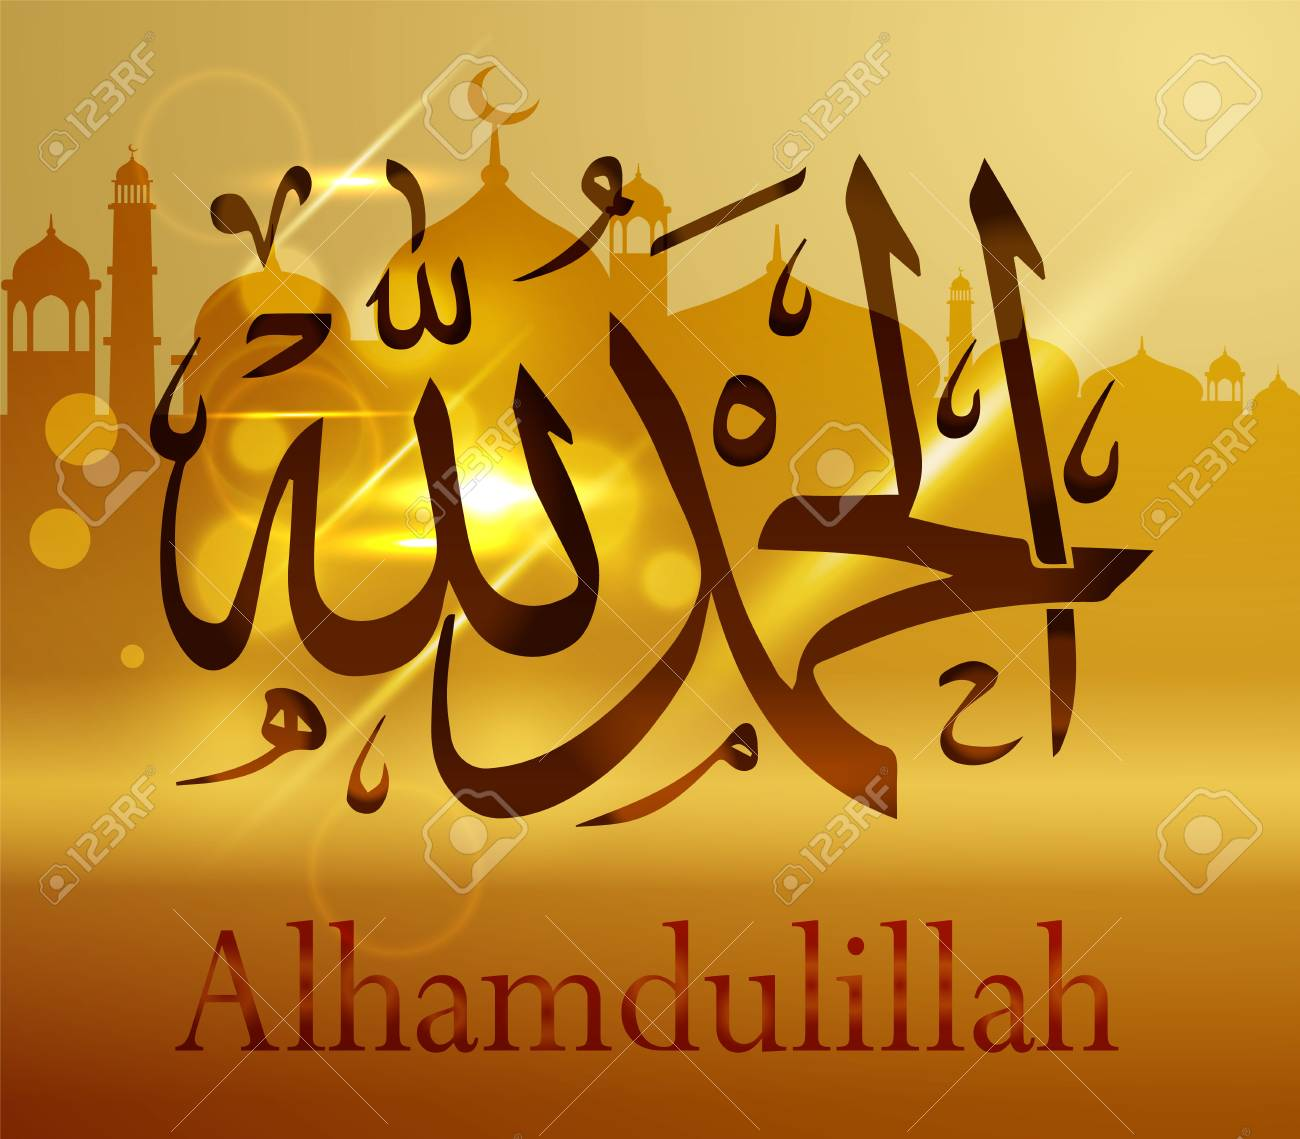 Arabic calligraphy alhamdulillah against the background of mosques arabic calligraphy alhamdulillah against the background of mosques for the design of muslim holidays thecheapjerseys Image collections